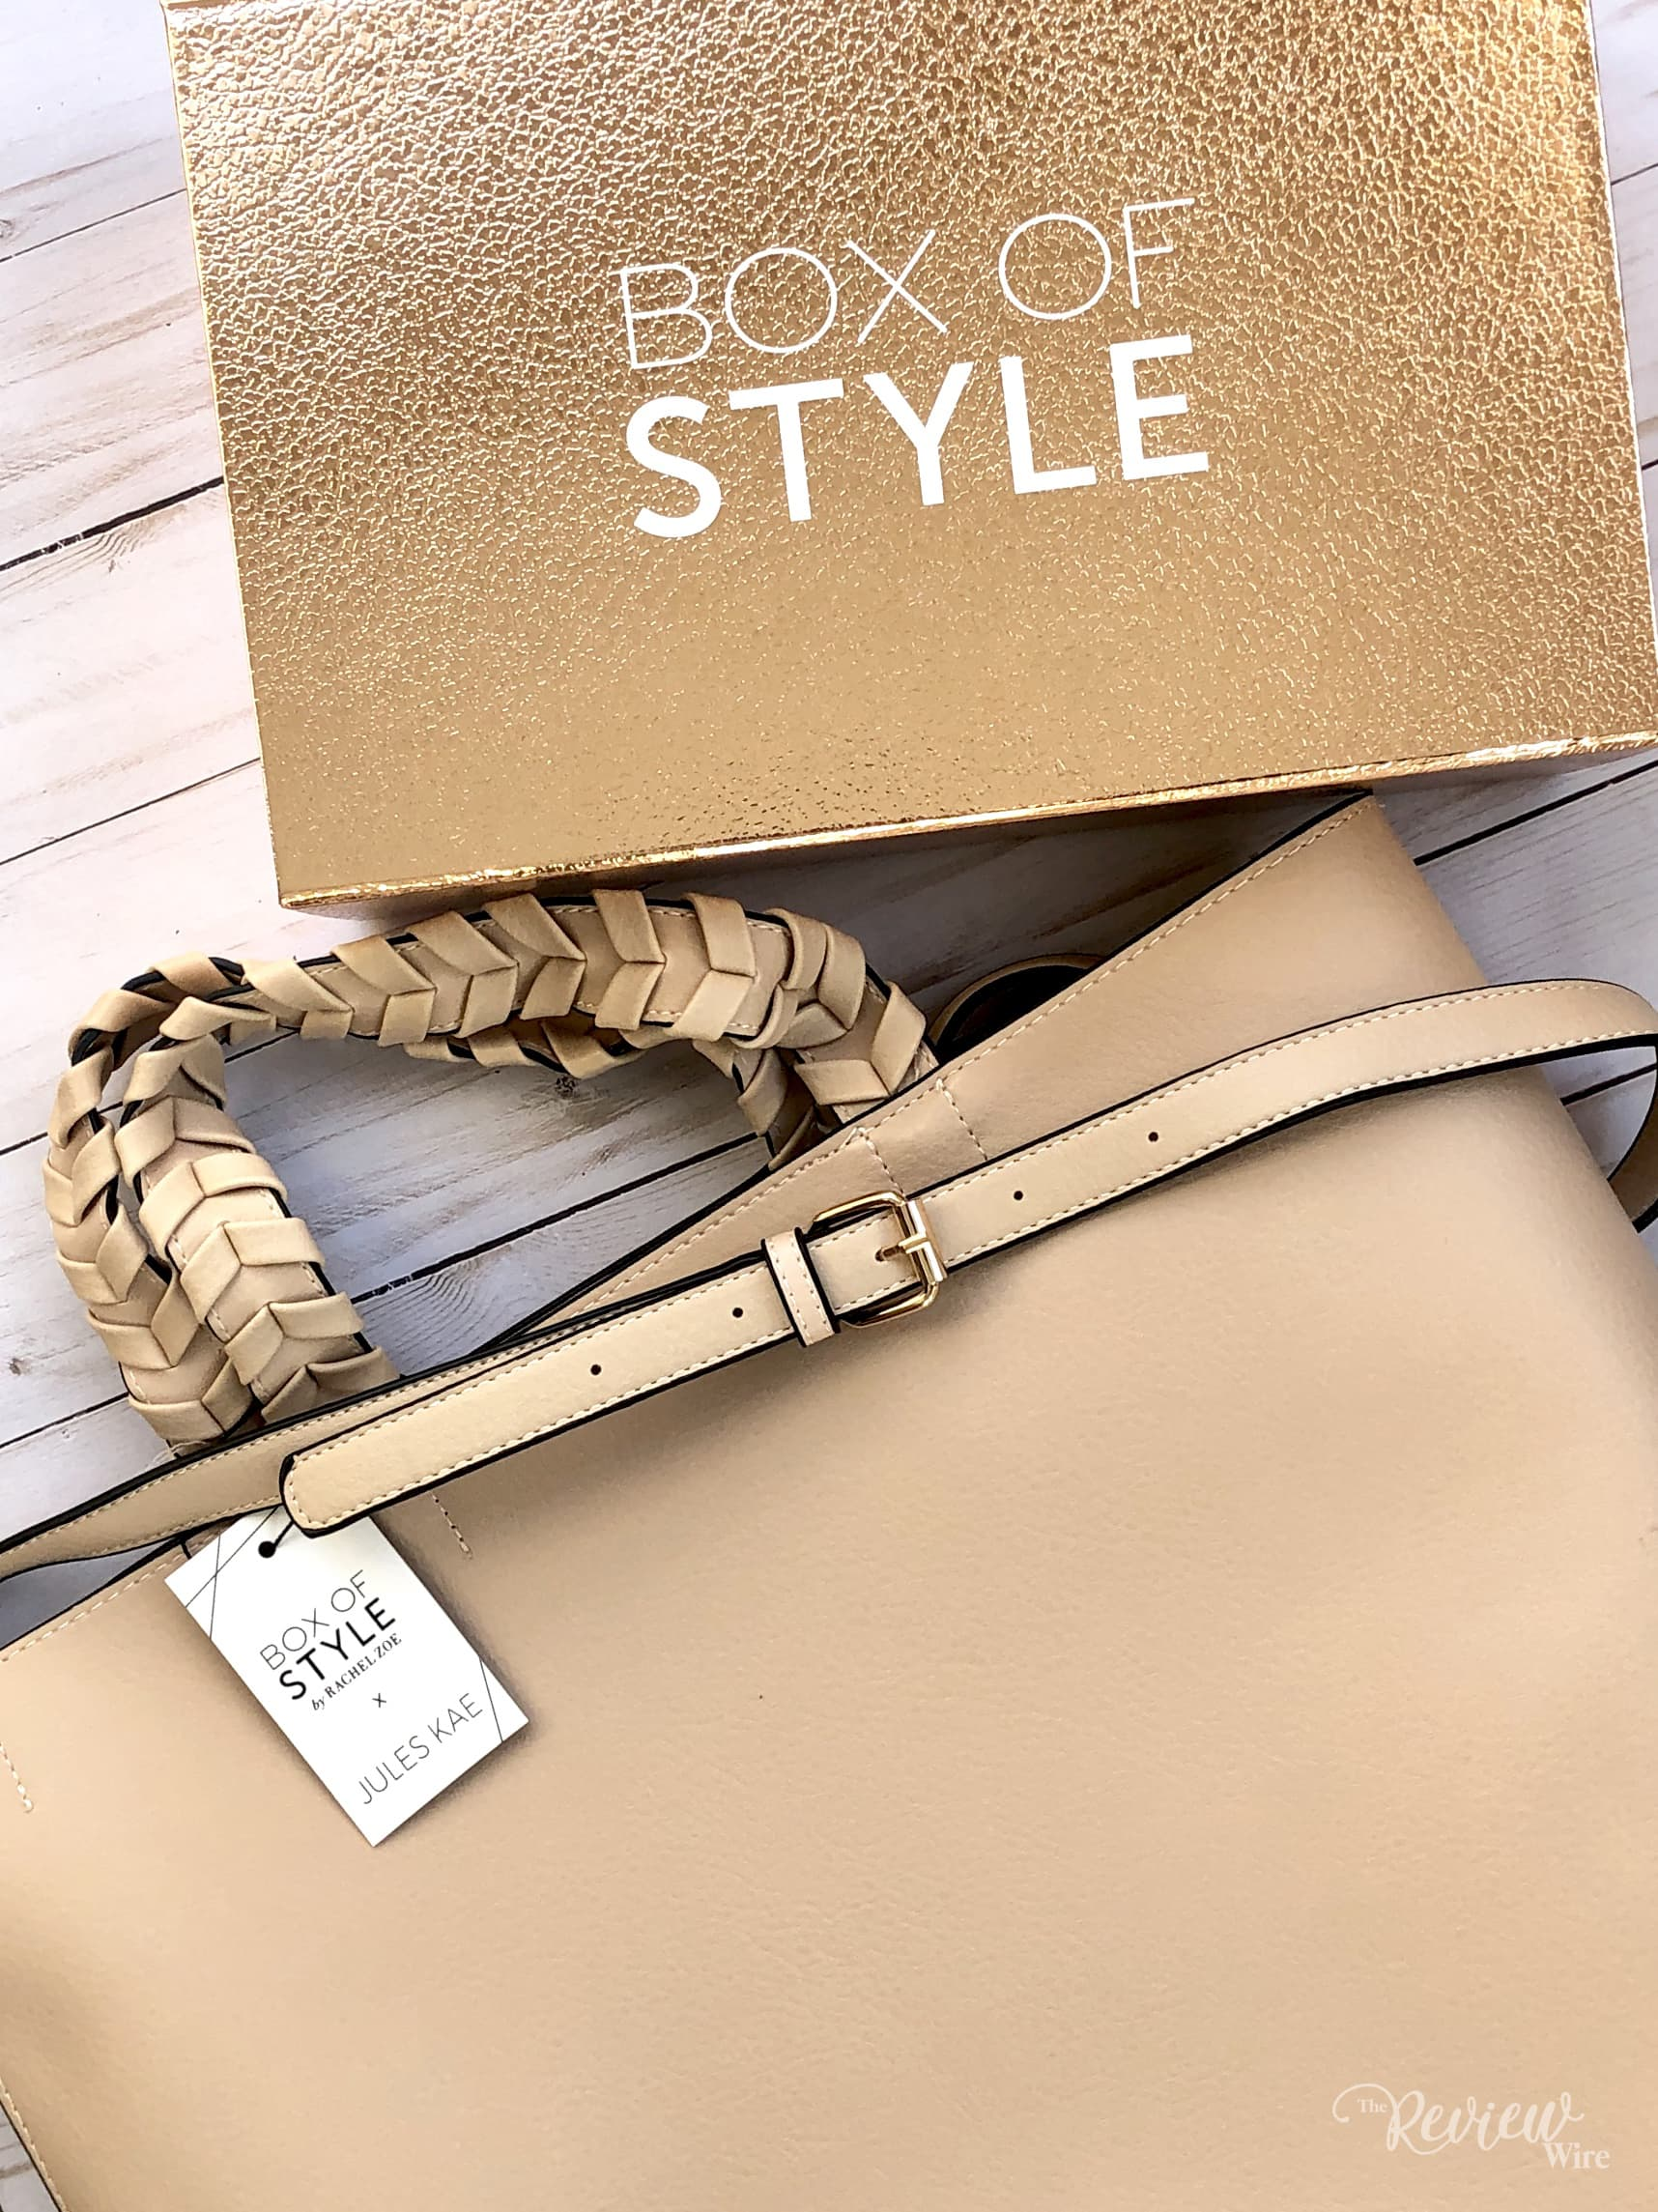 The Review Wire: Box of Style Jules Kae Vegan Leather Tote